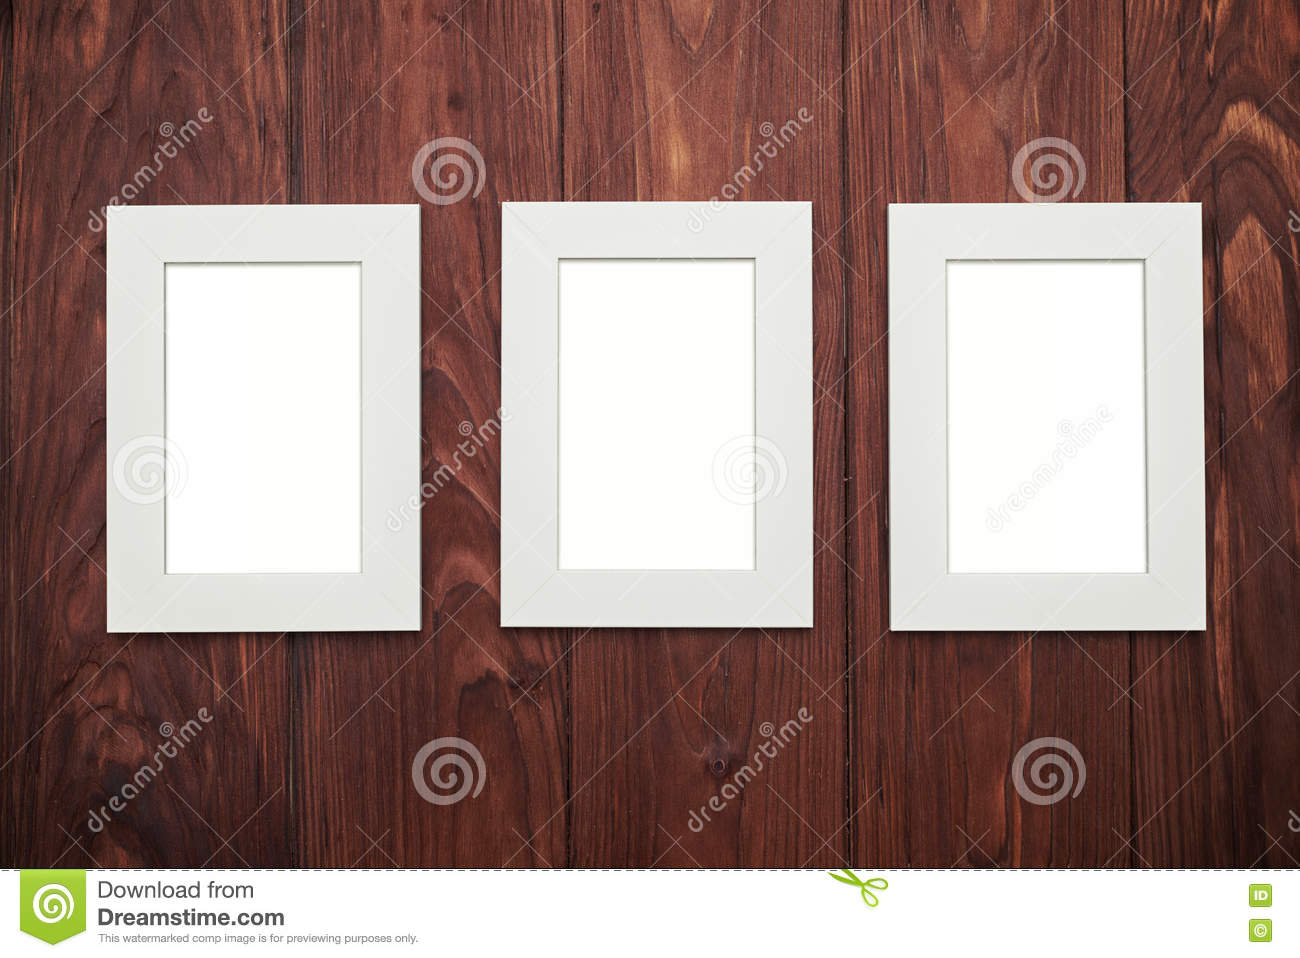 Three empty frames in the middle on brown wooden desk